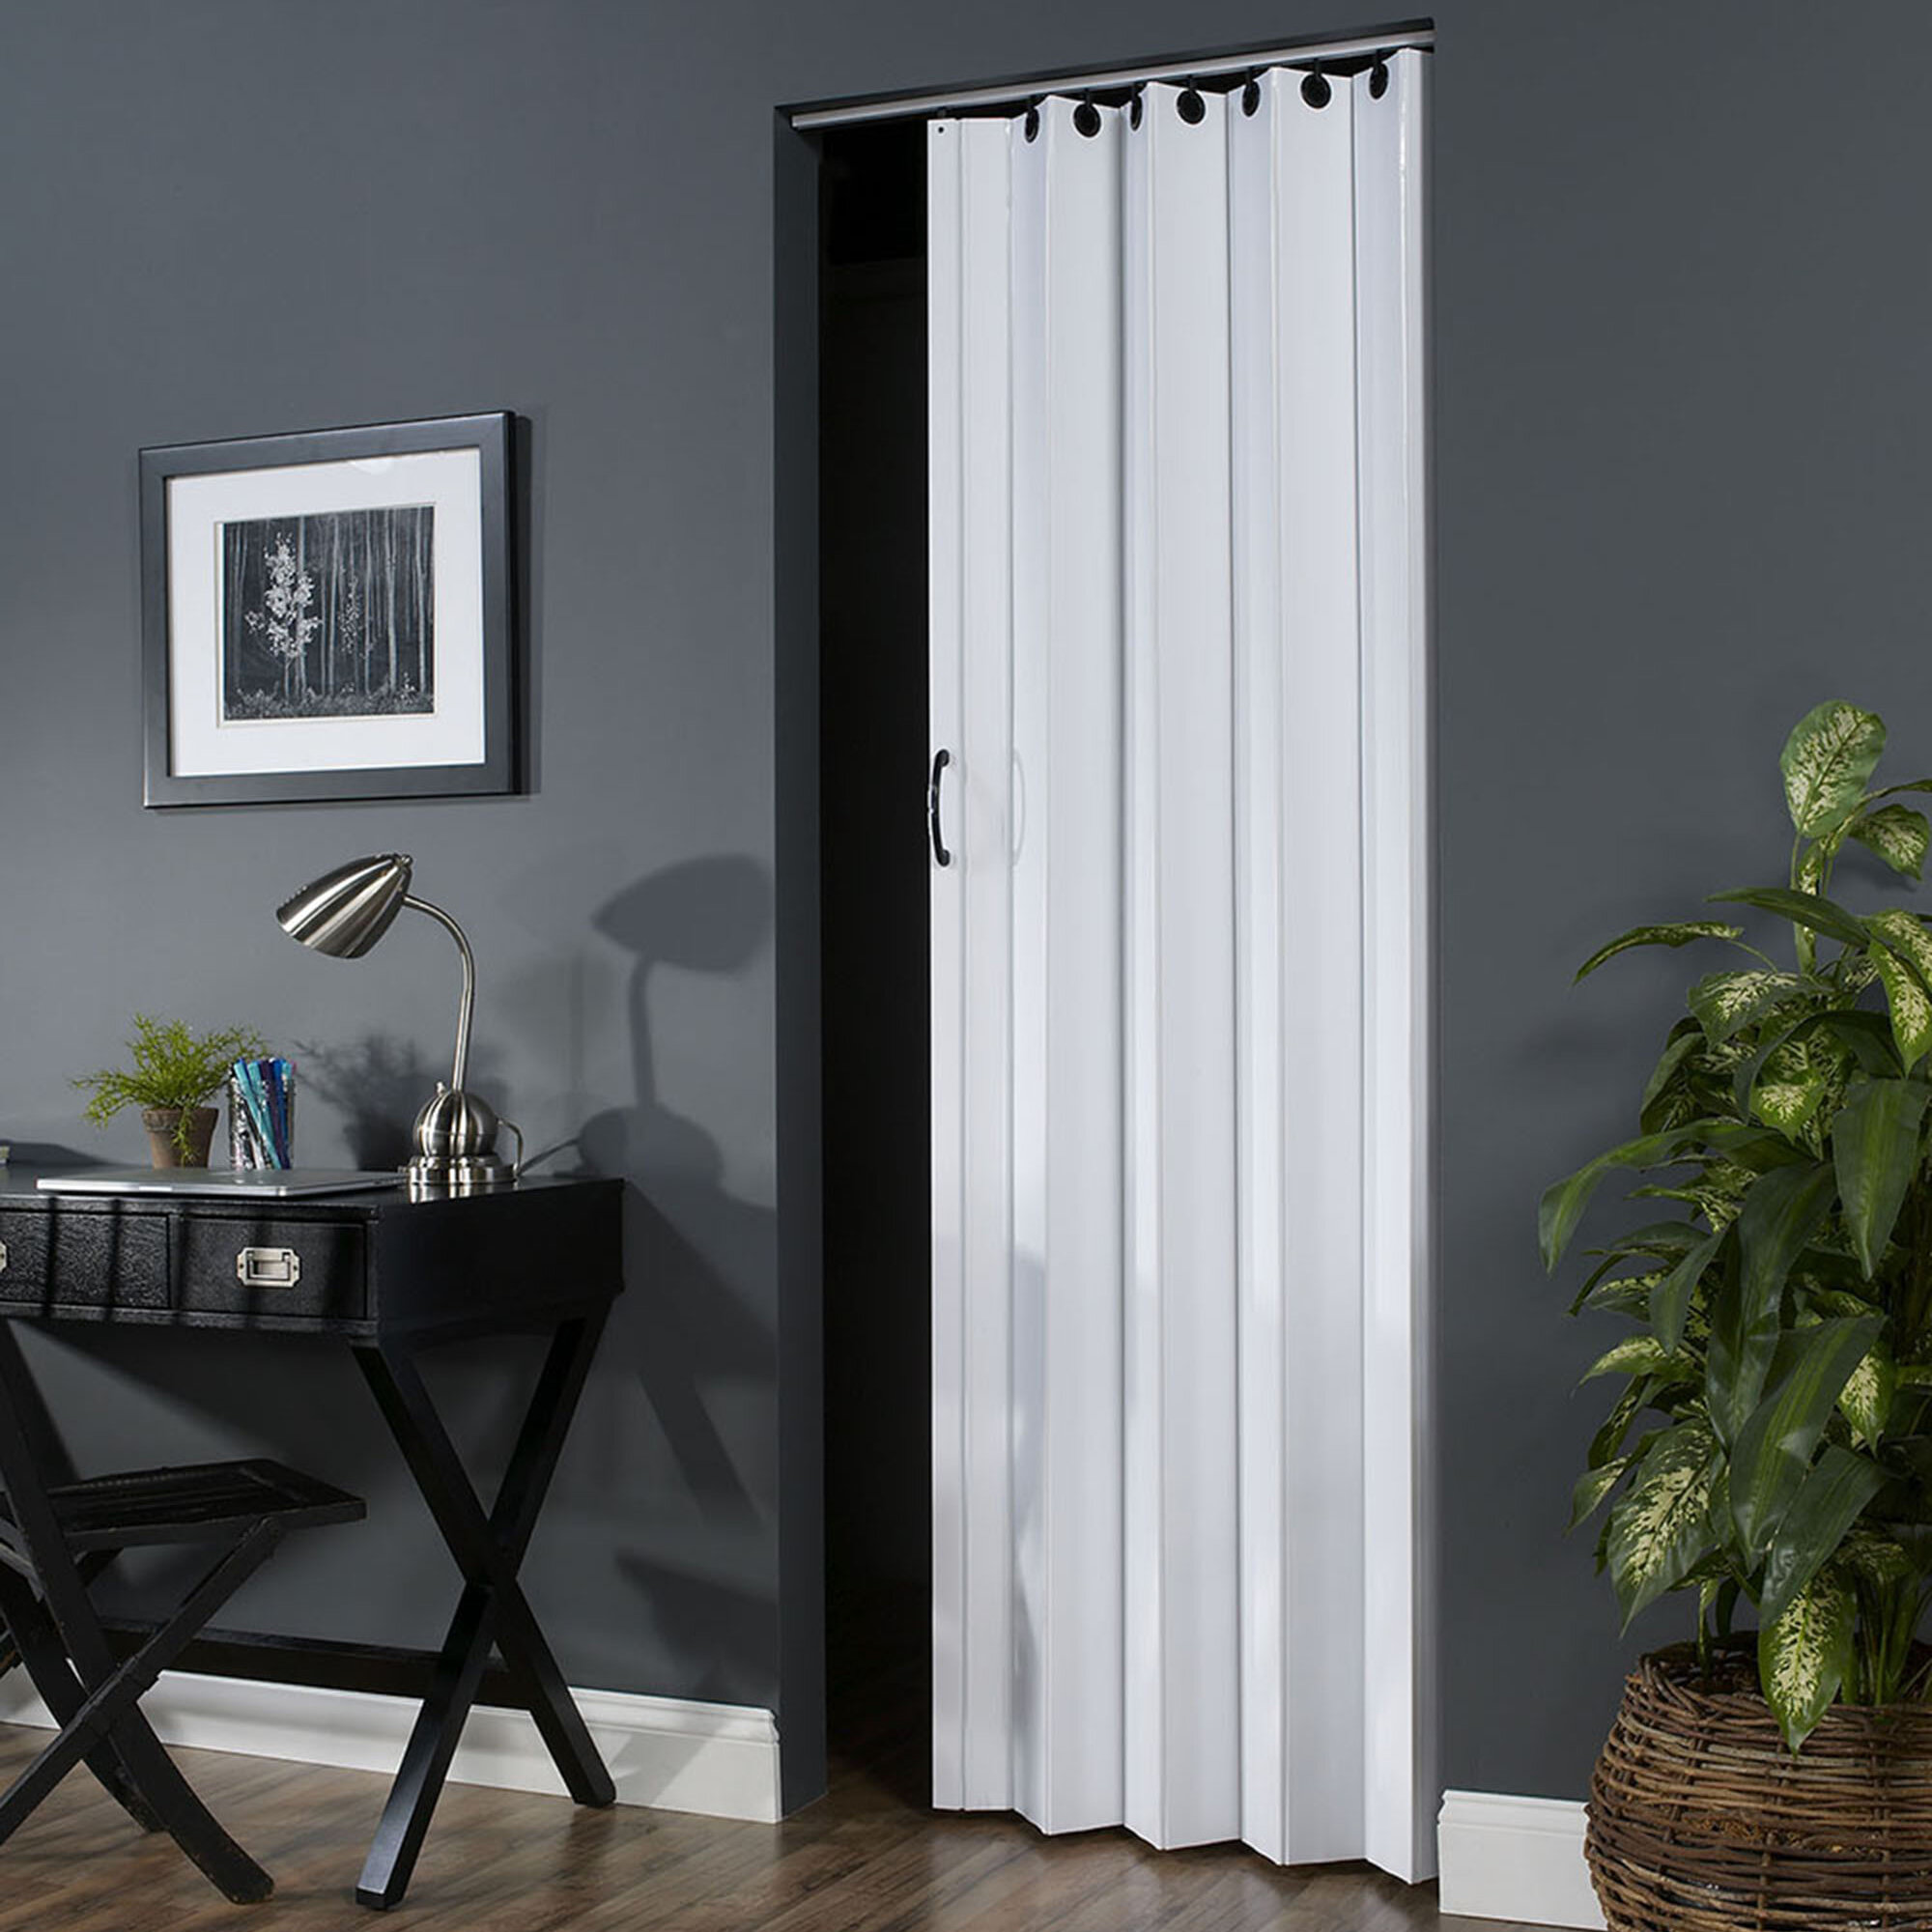 brings size doors window valentines louvered happy custom choice of style closet fold french full and quad door day glass hardware image you patio accordion makeover